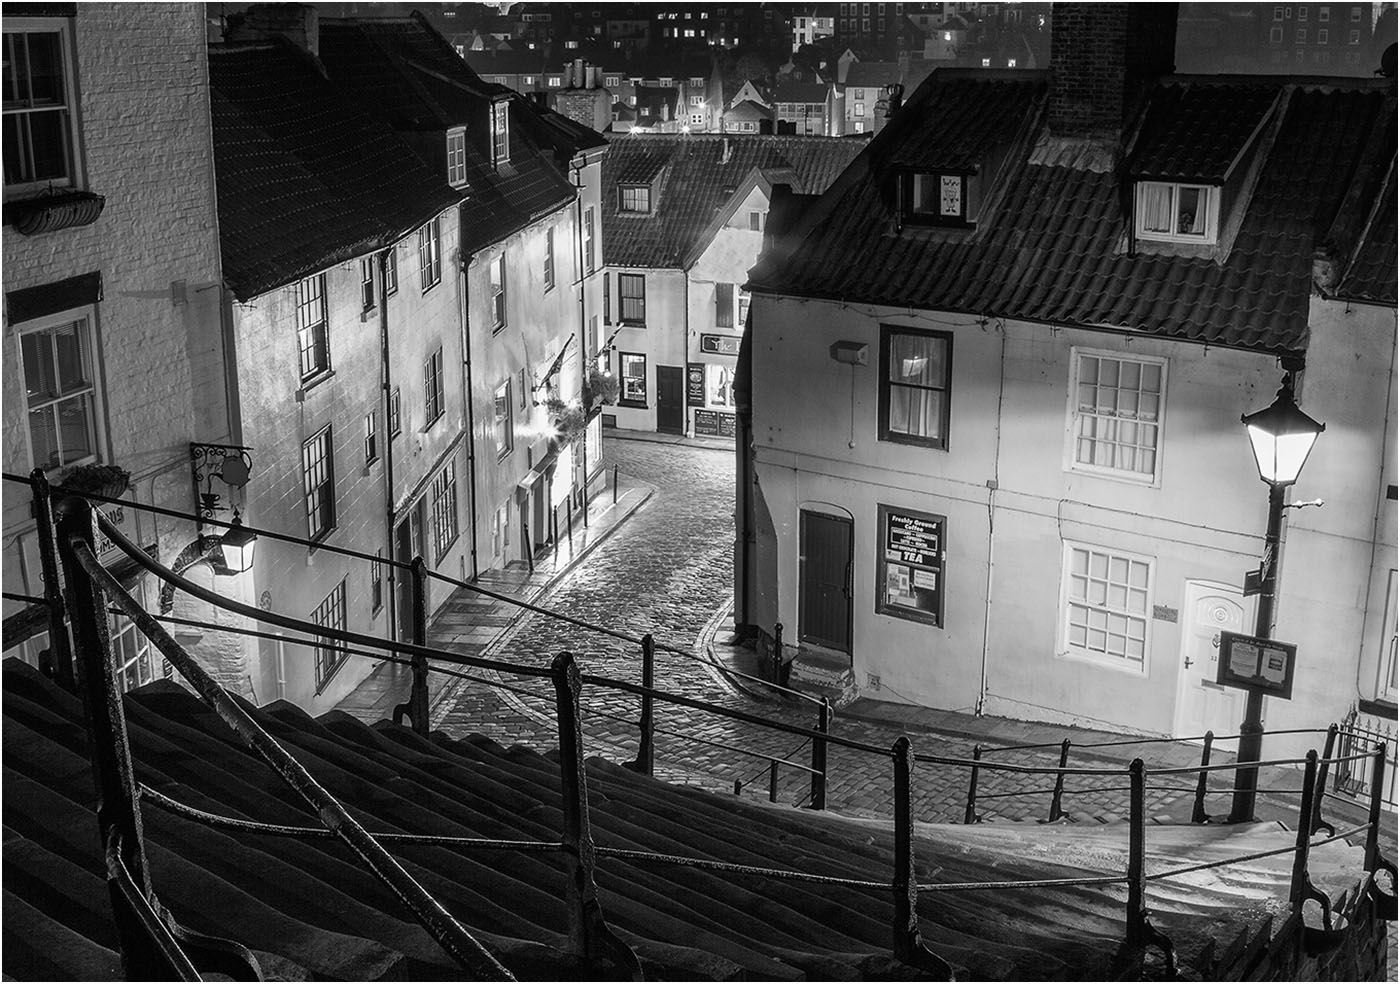 Whitby at night' by Tony Oliver